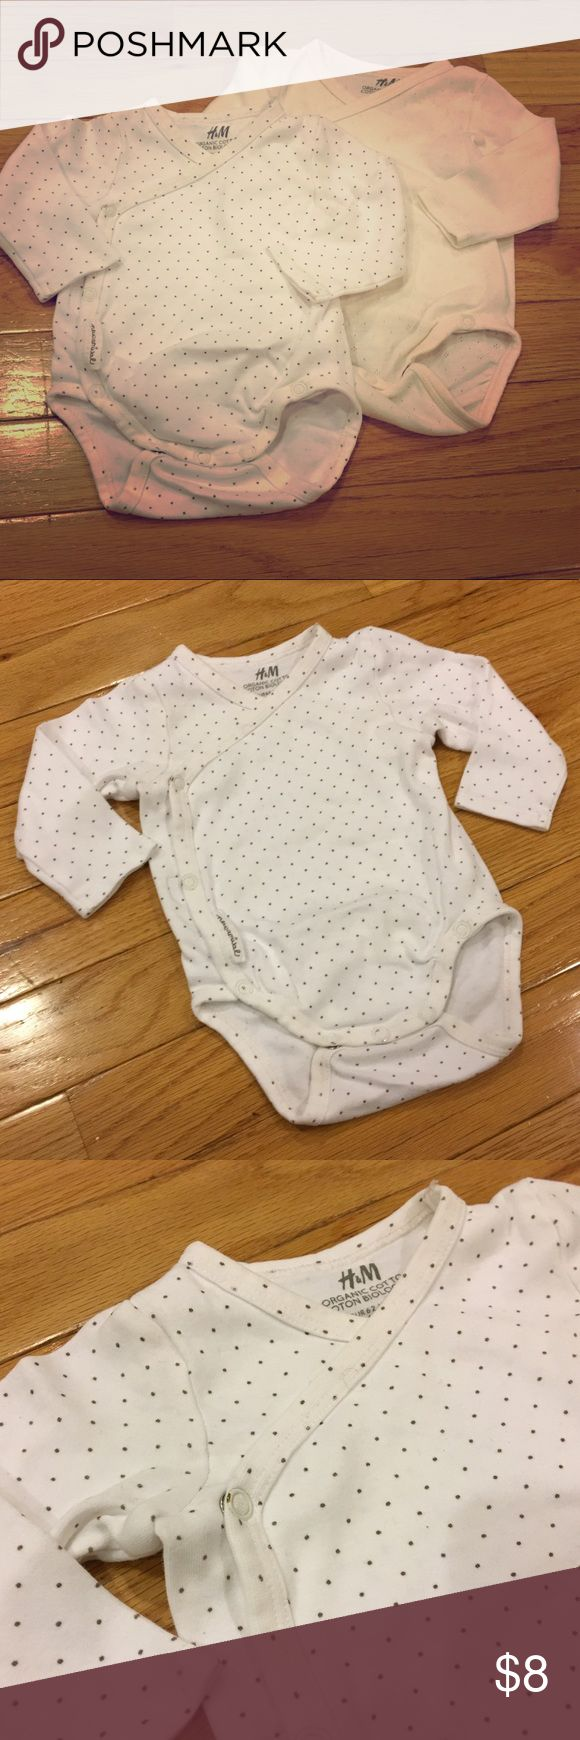 H&M Organic Cotton Side Snap Onesies Pair Good used condition, 2-4M, long sleeved, organic cotton side snap onesies. These fit so comfortably on both my son and daughter. We loved them and wore them often. H&M One Pieces Bodysuits